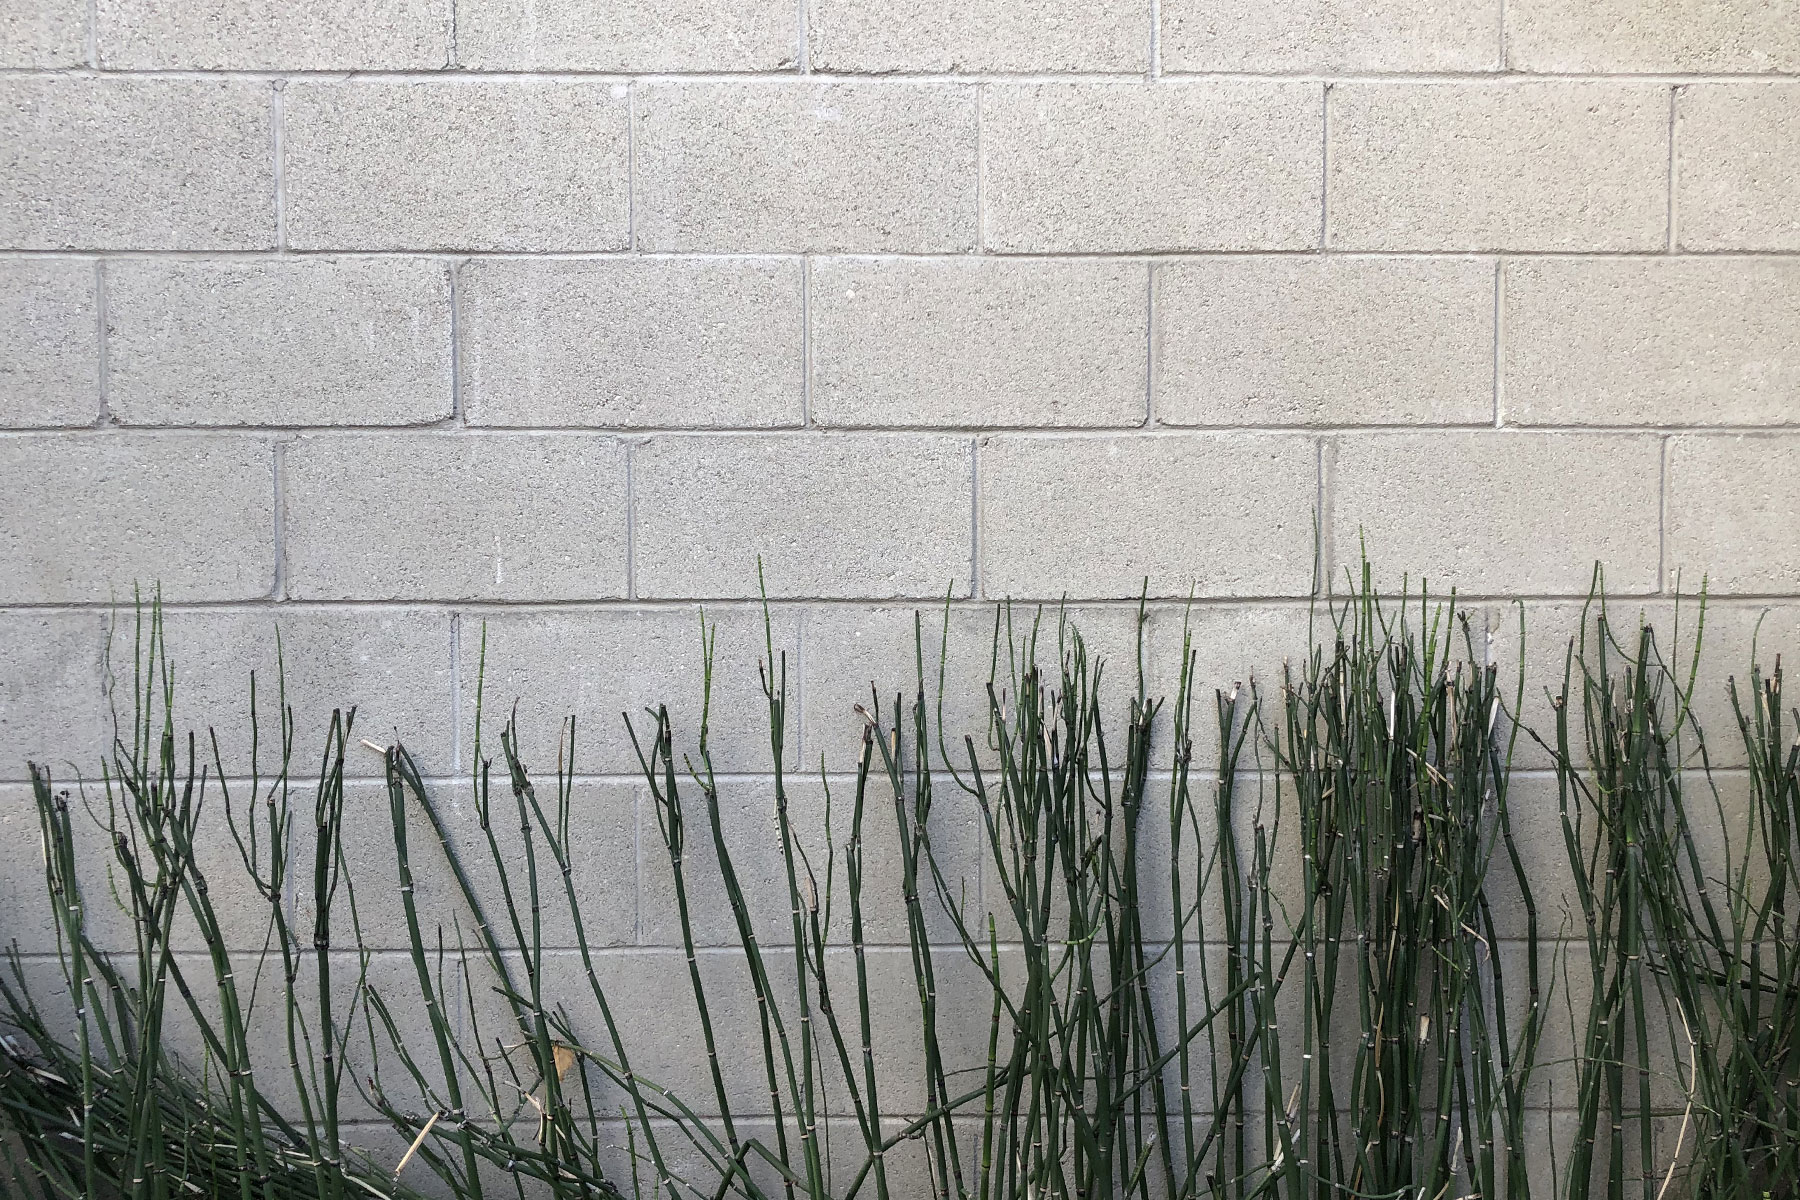 Brick Wall With Bamboo - Outdoor Location